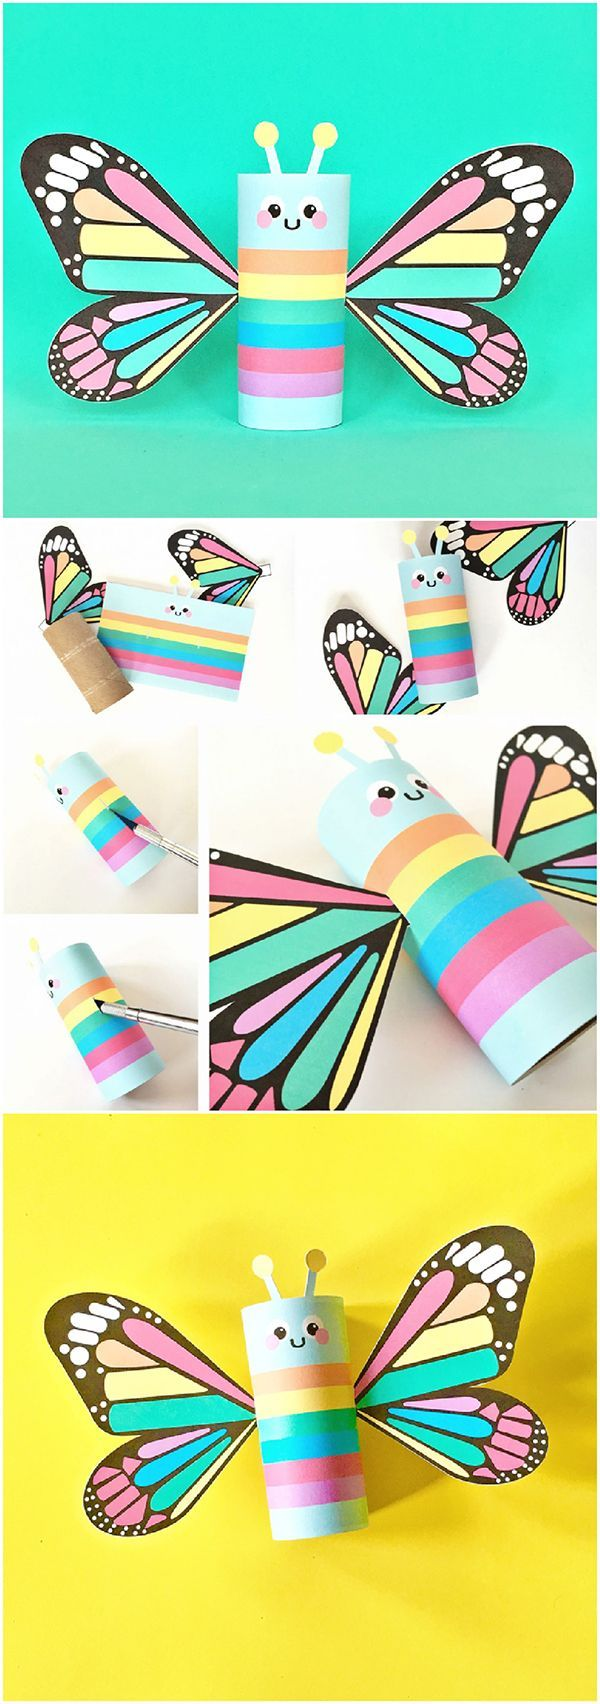 5 Minute Crafts With Paper Cards